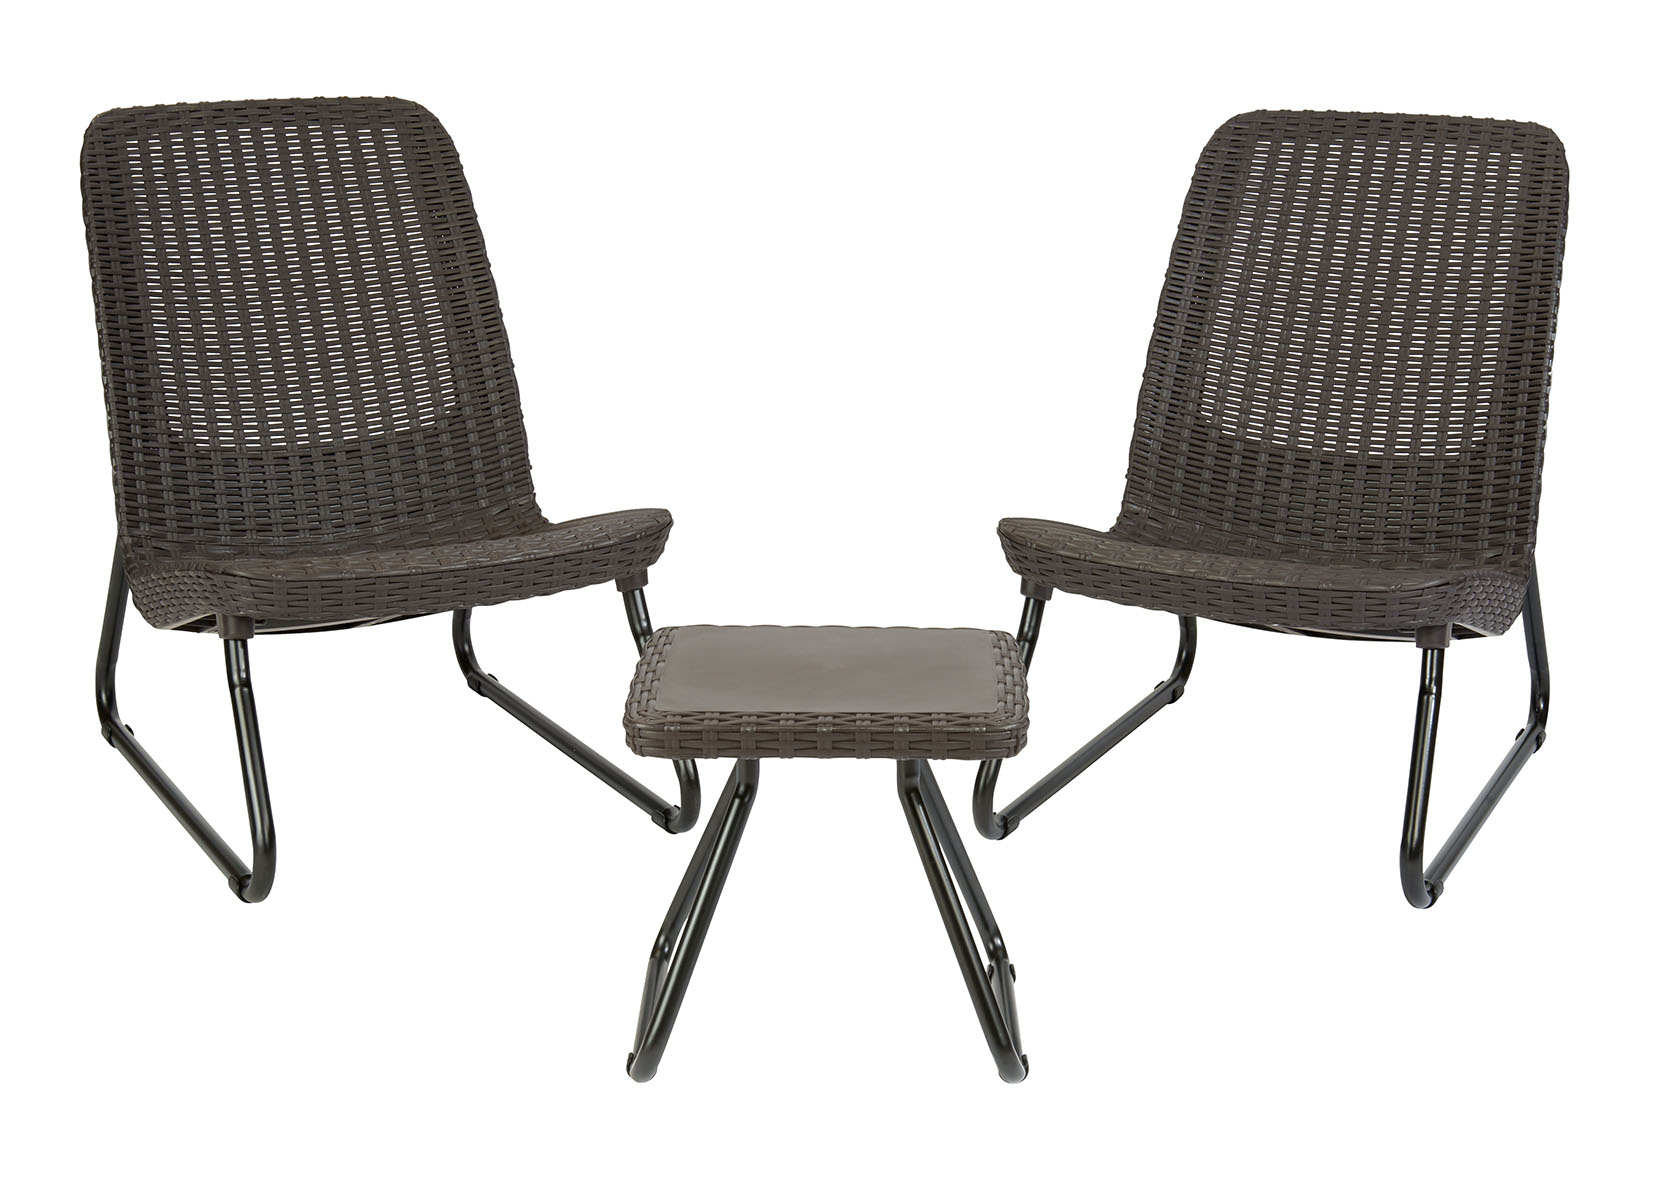 Keter Rio Resin 3 Piece Conversation Set, All Weather Plastic Patio Lounge  Furniture, Brown Rattan